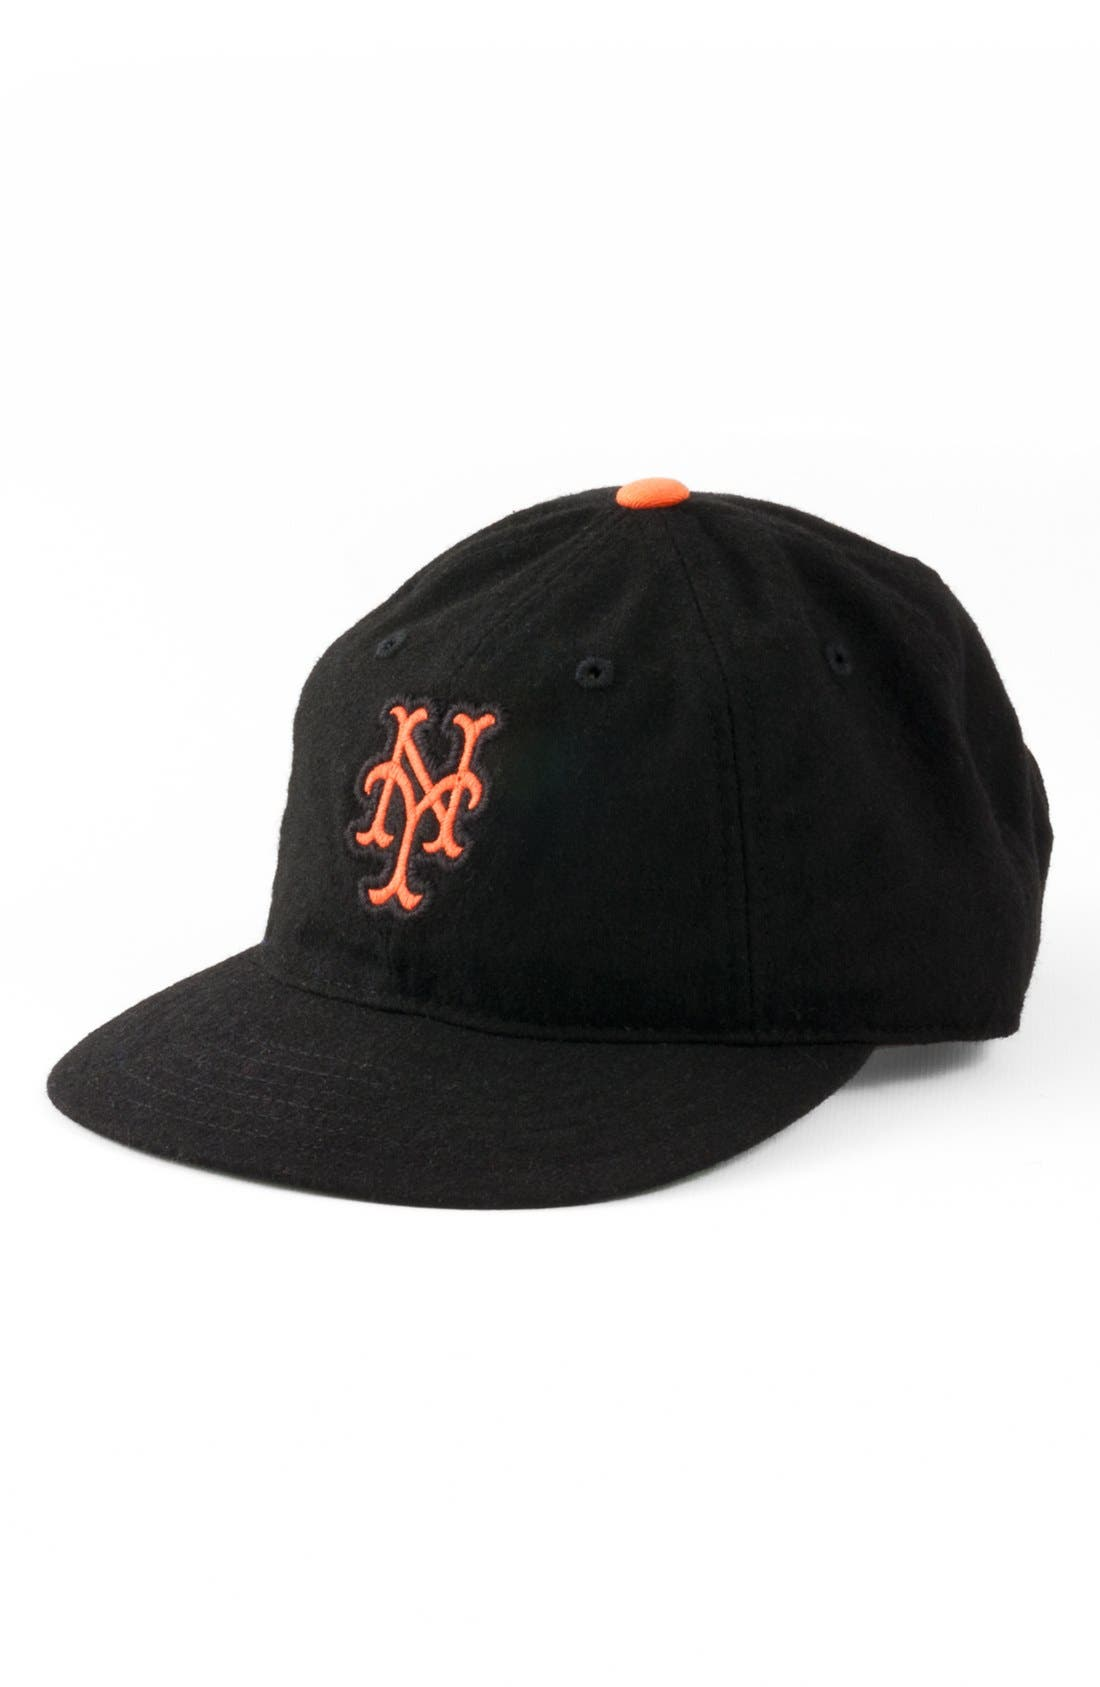 Main Image - American Needle 'New York Giants - Statesman' Baseball Cap